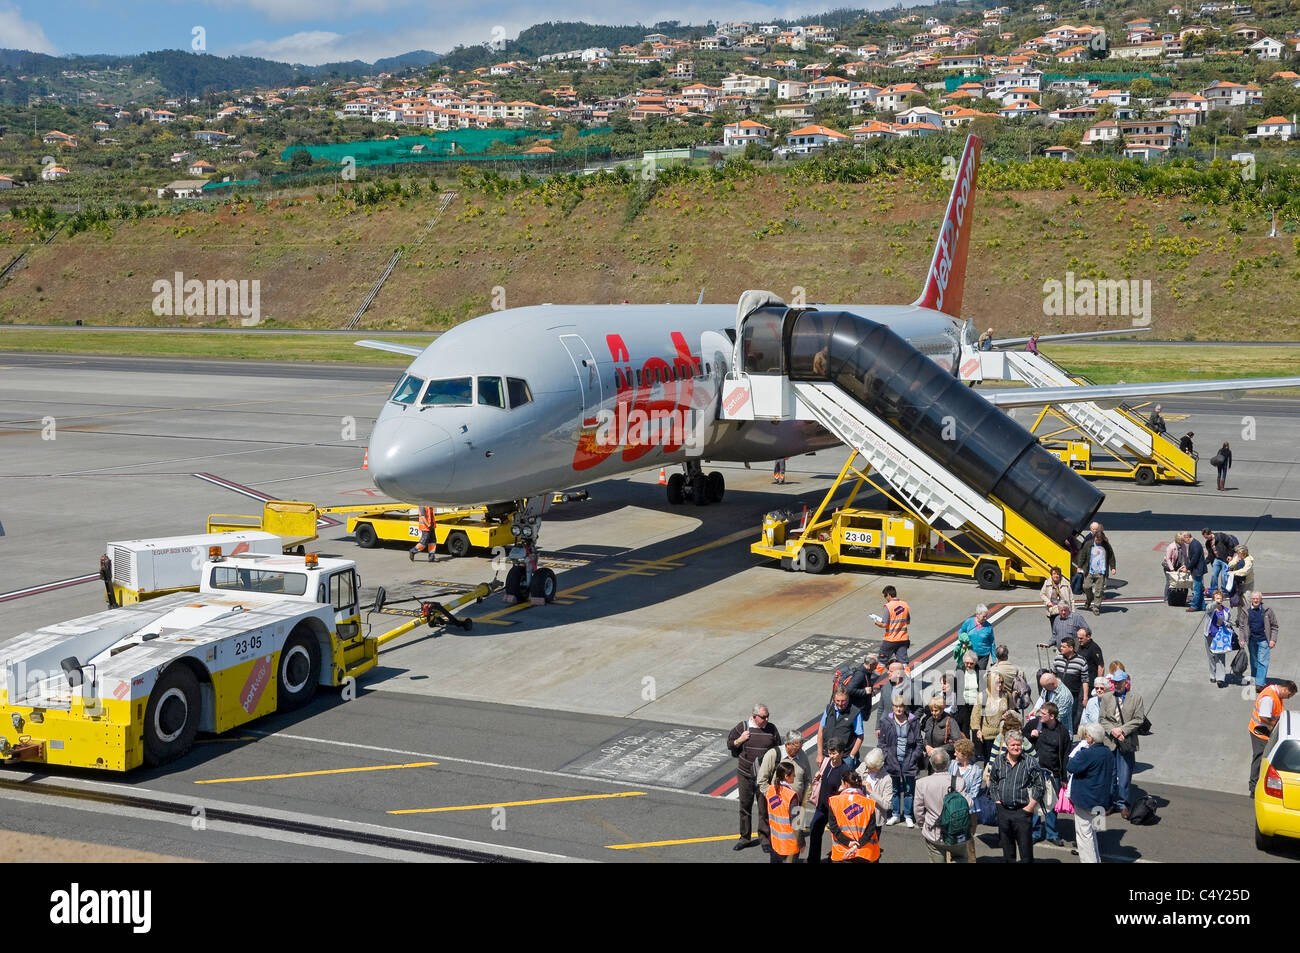 Passengers disembarking from Jet2 aircraft at Funchal airport Madeira Portugal EU Europe - Stock Image